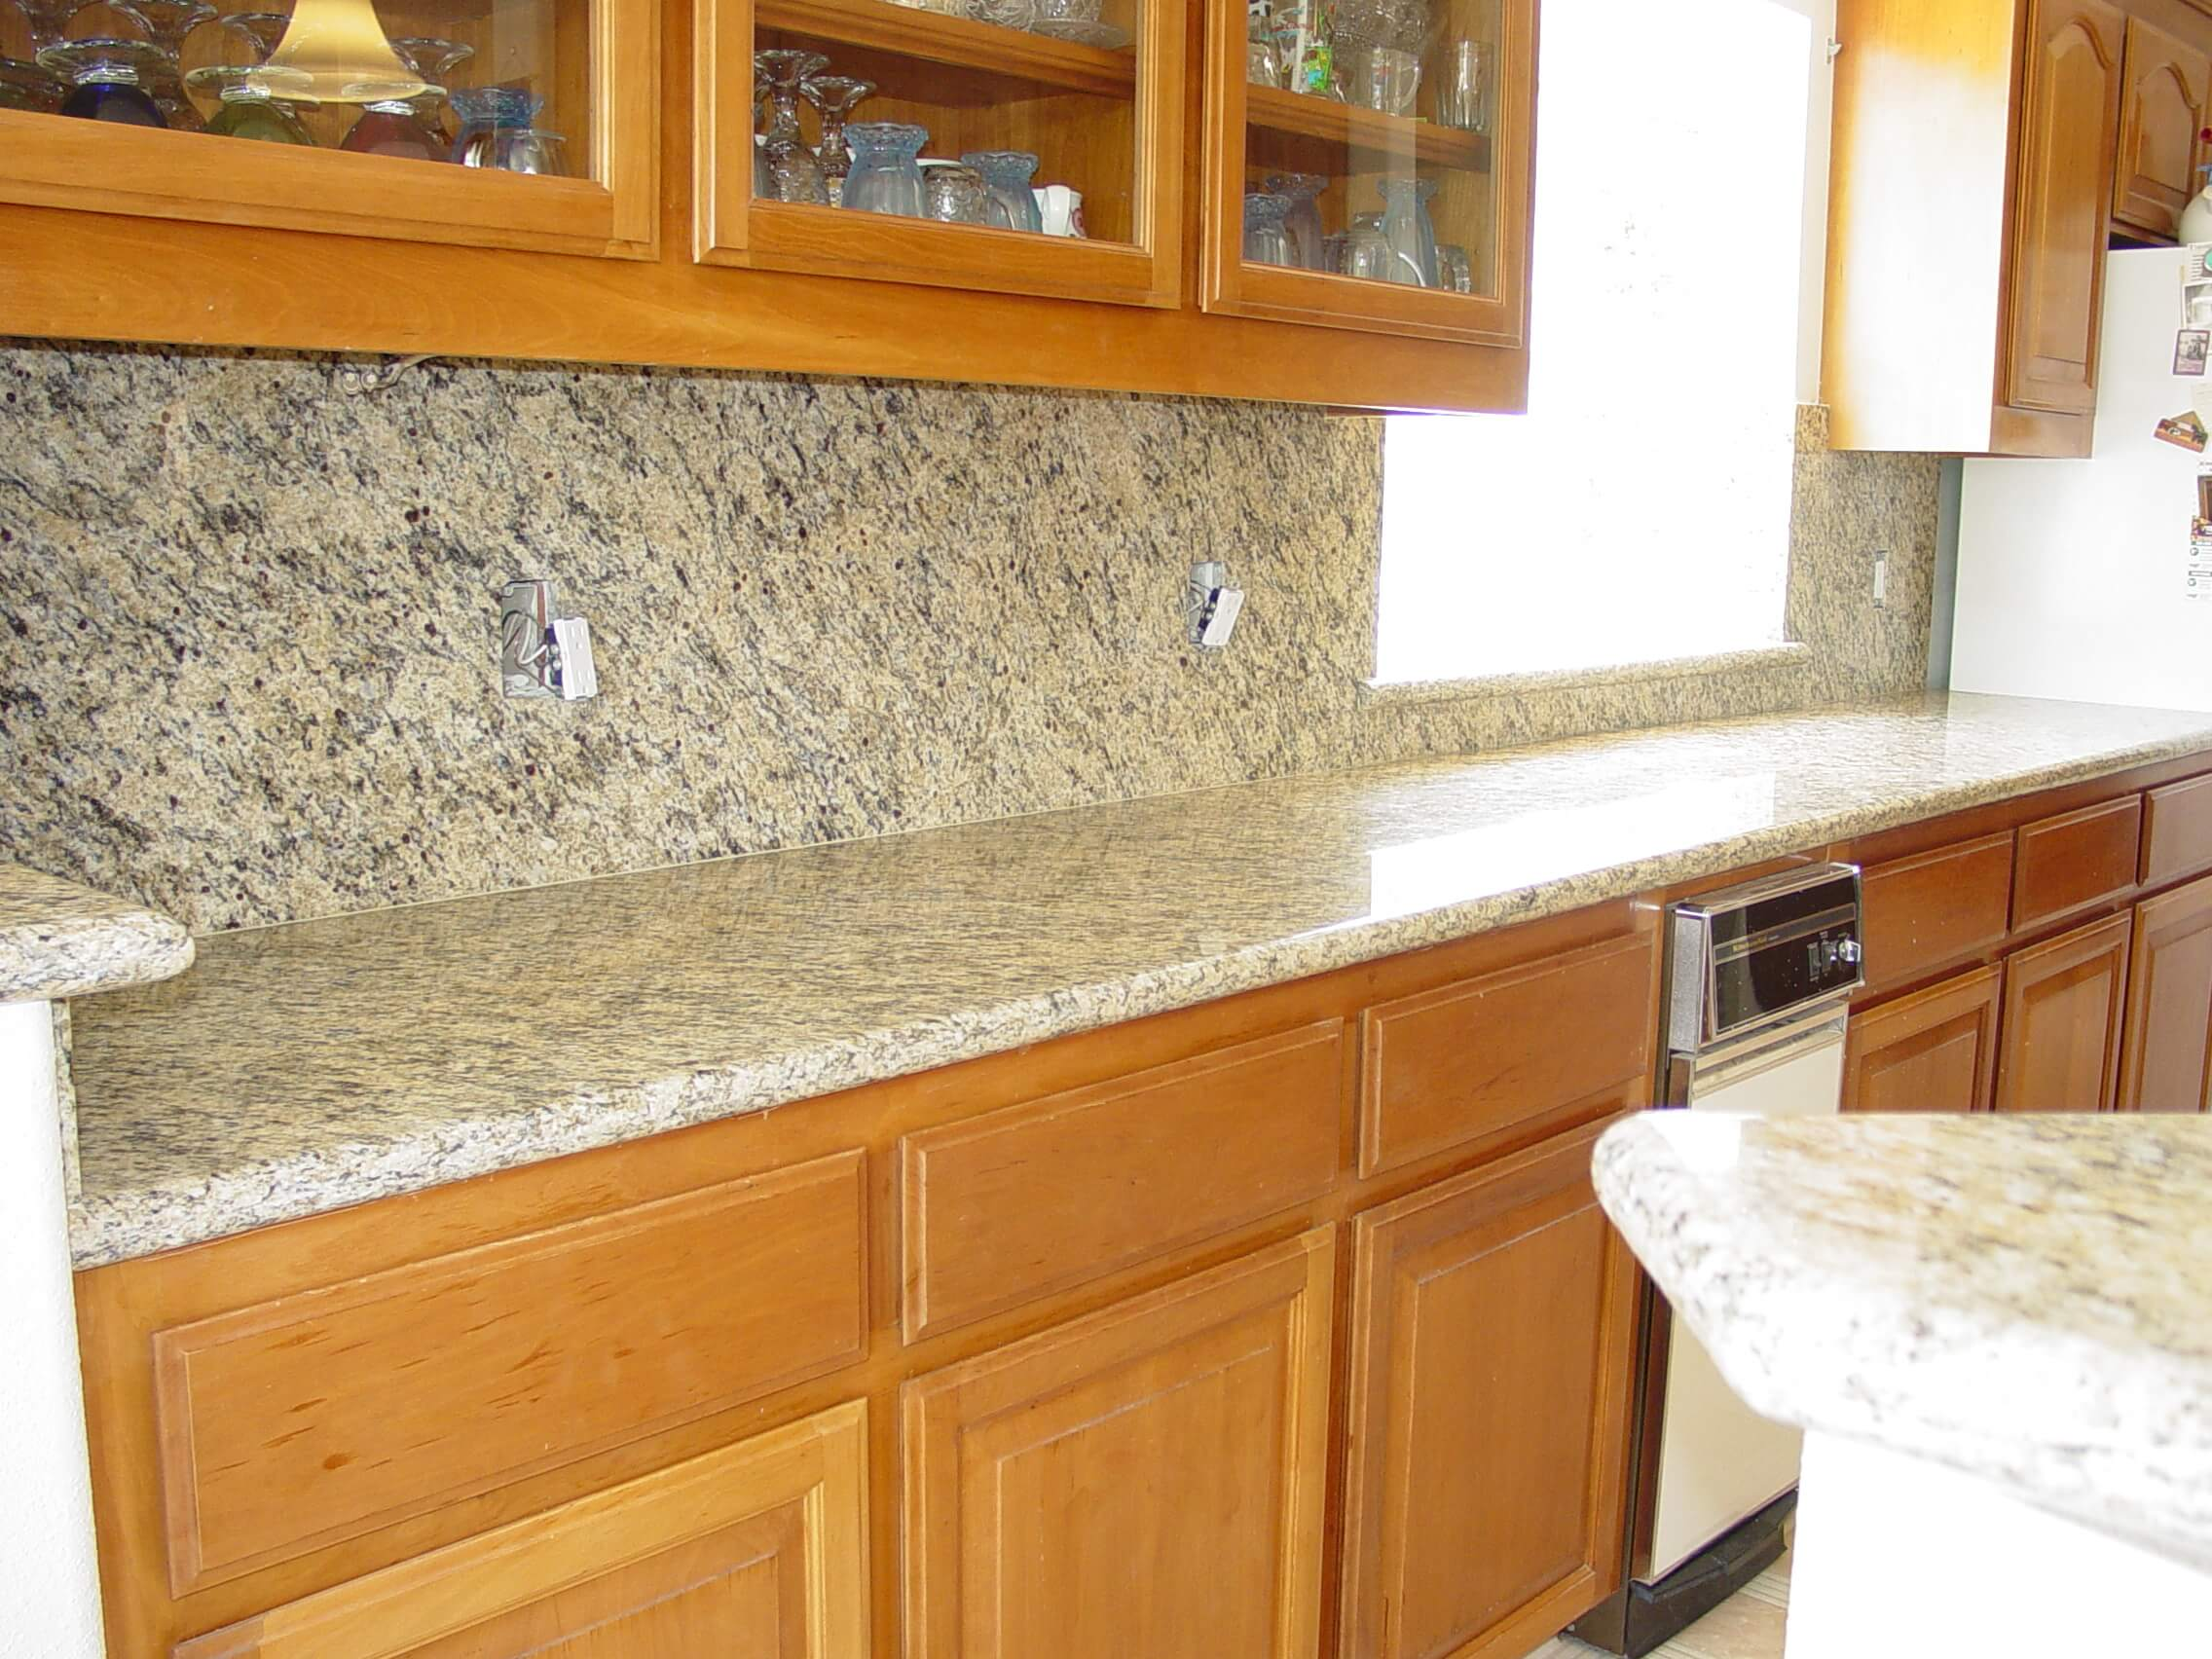 custom counters and tile solution by Medina's bars